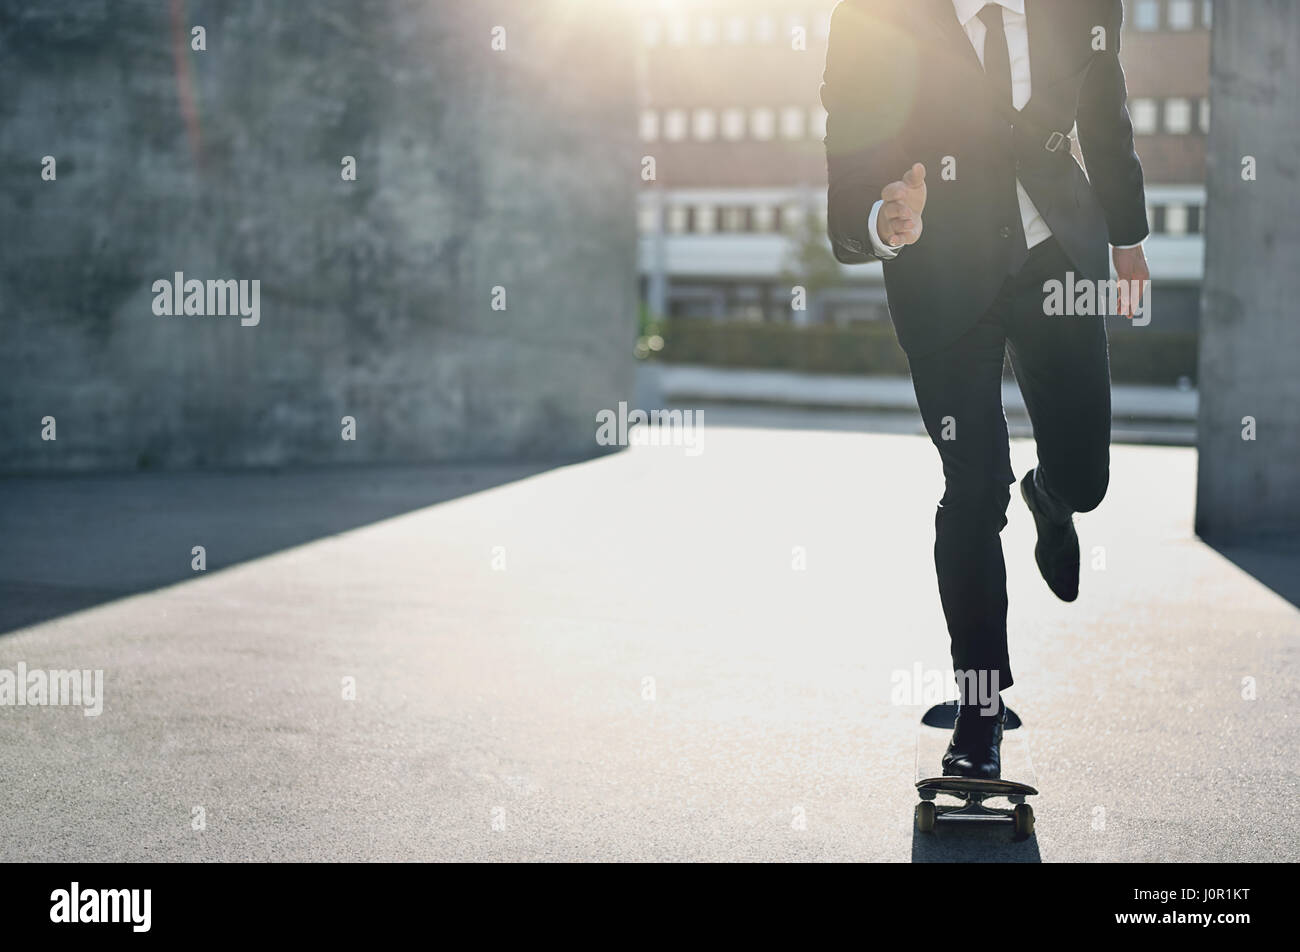 Horizontal crop shot of a businessman wearing formal suit riding a skateboard in the city. - Stock Image